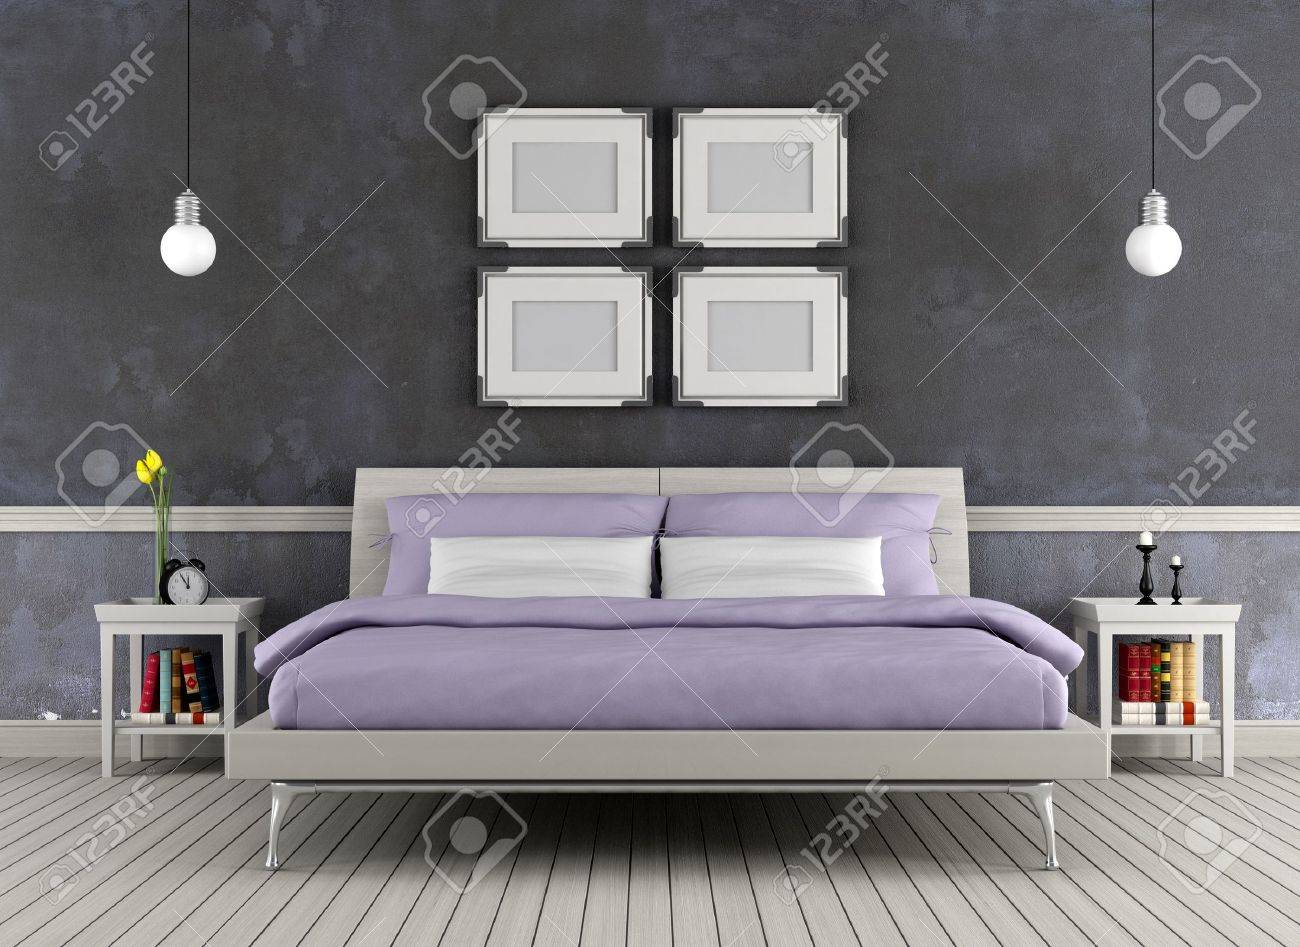 Modern double bed in a vintage room - rendering Stock Photo - 17997917